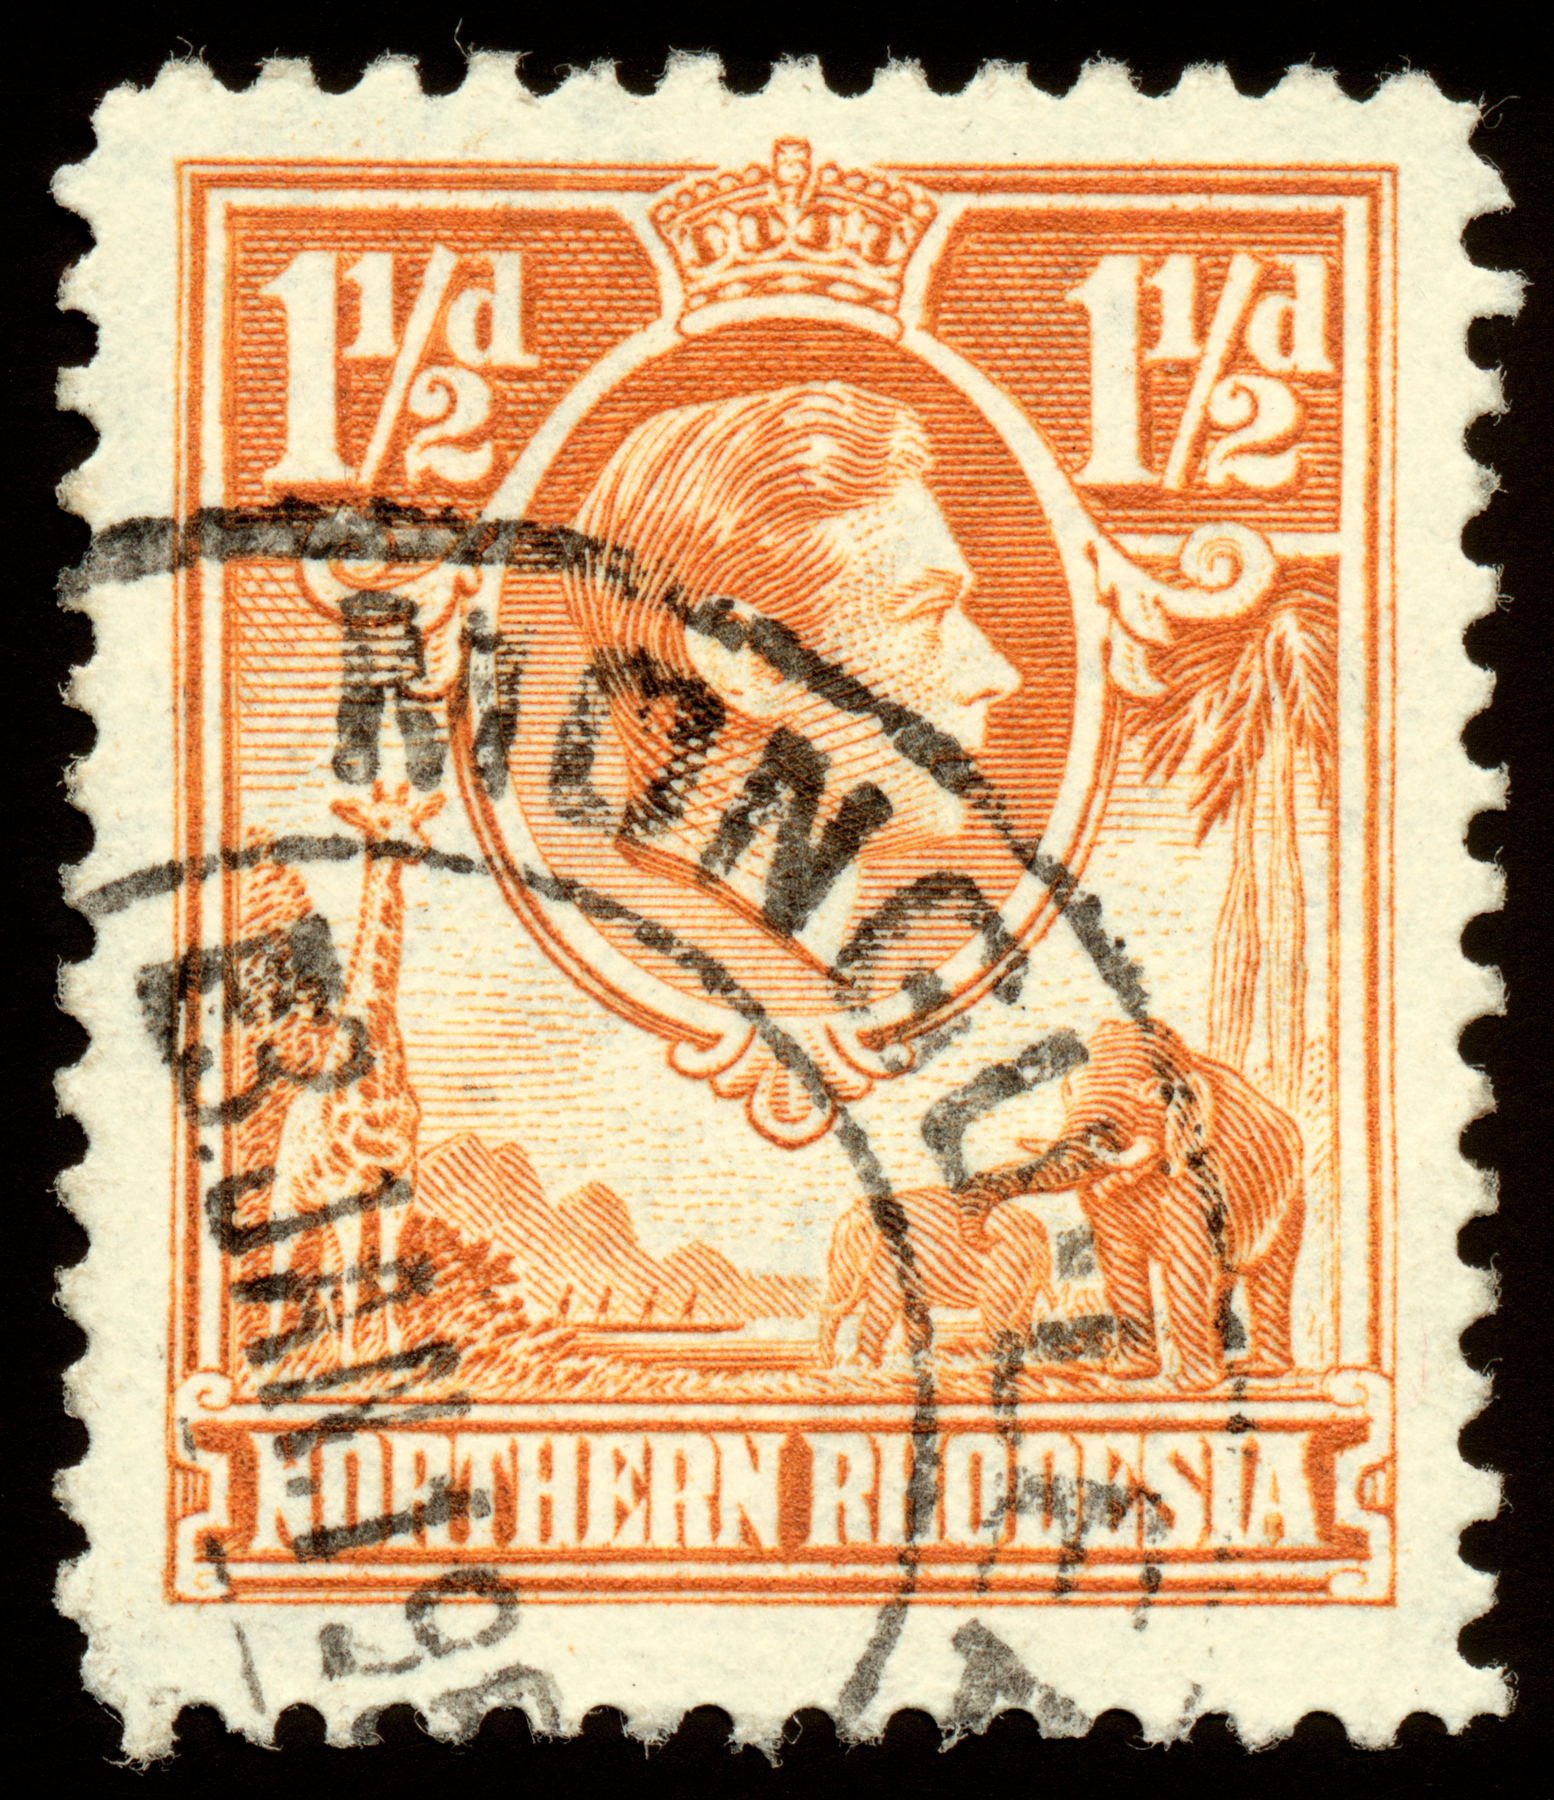 Orange king george vi stamp photo